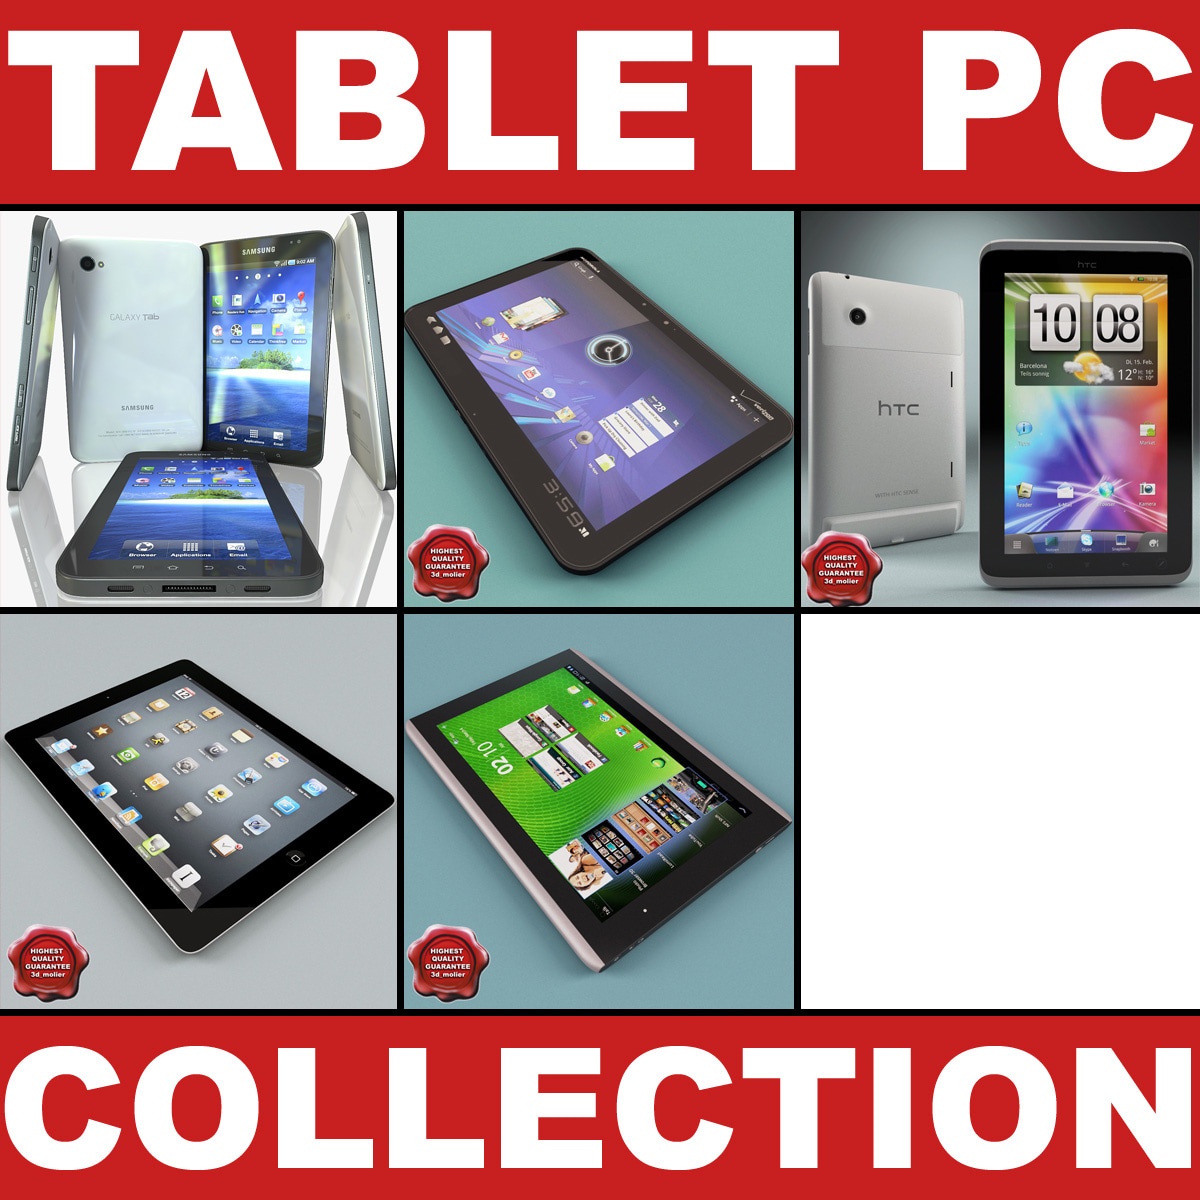 Tablet_PC_Collection_V2_000.jpg